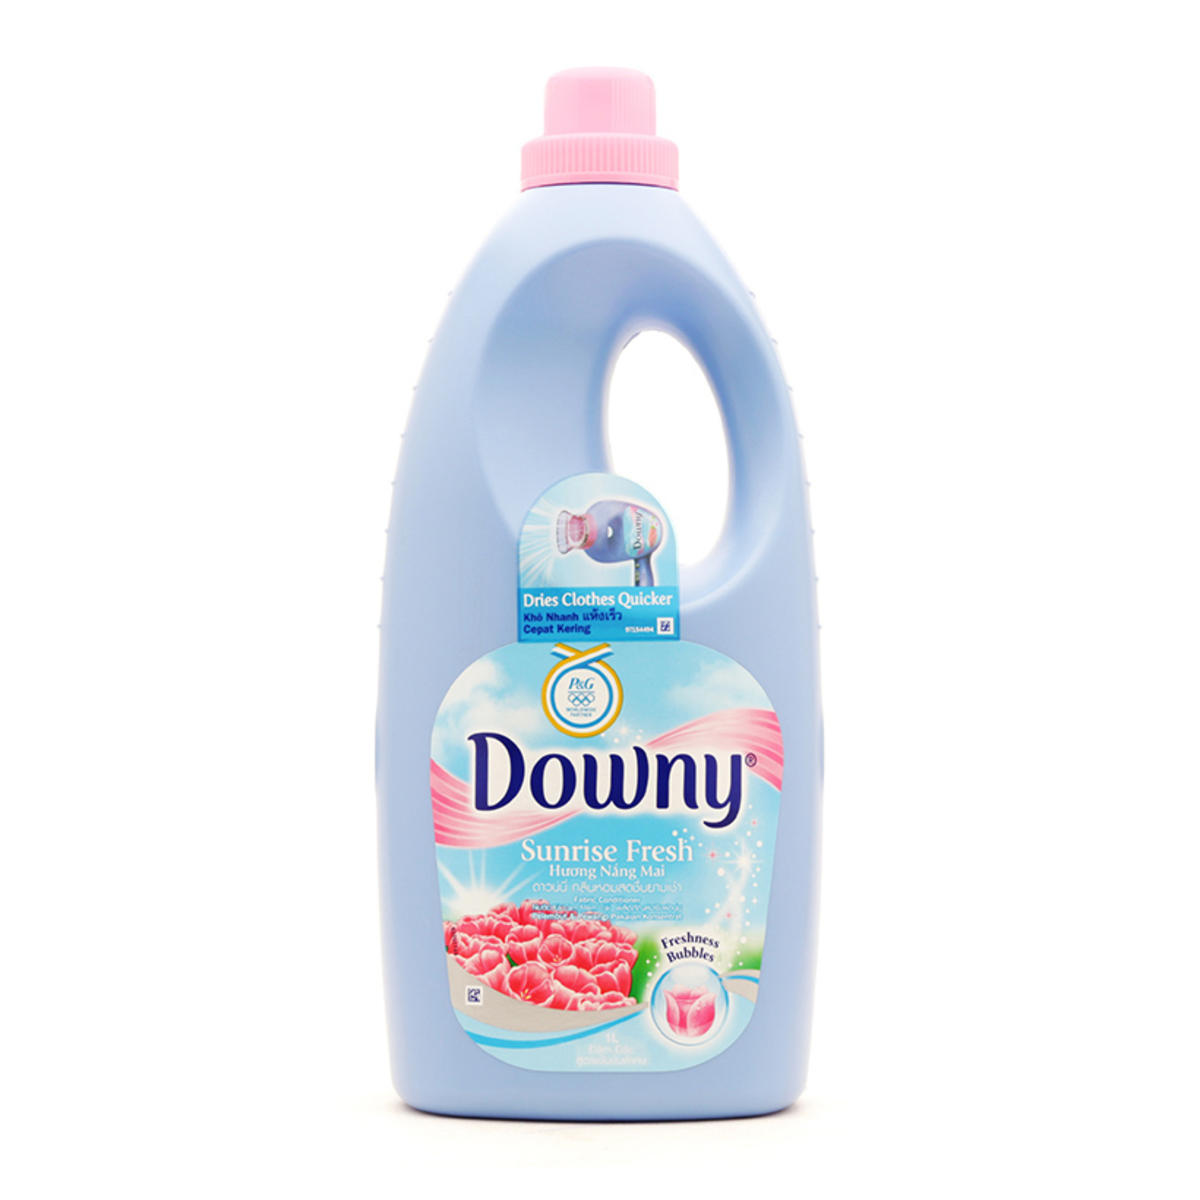 DOWNY FRESH SUNSHINE FABRIC SOFTENER 1L X 12 BTLS